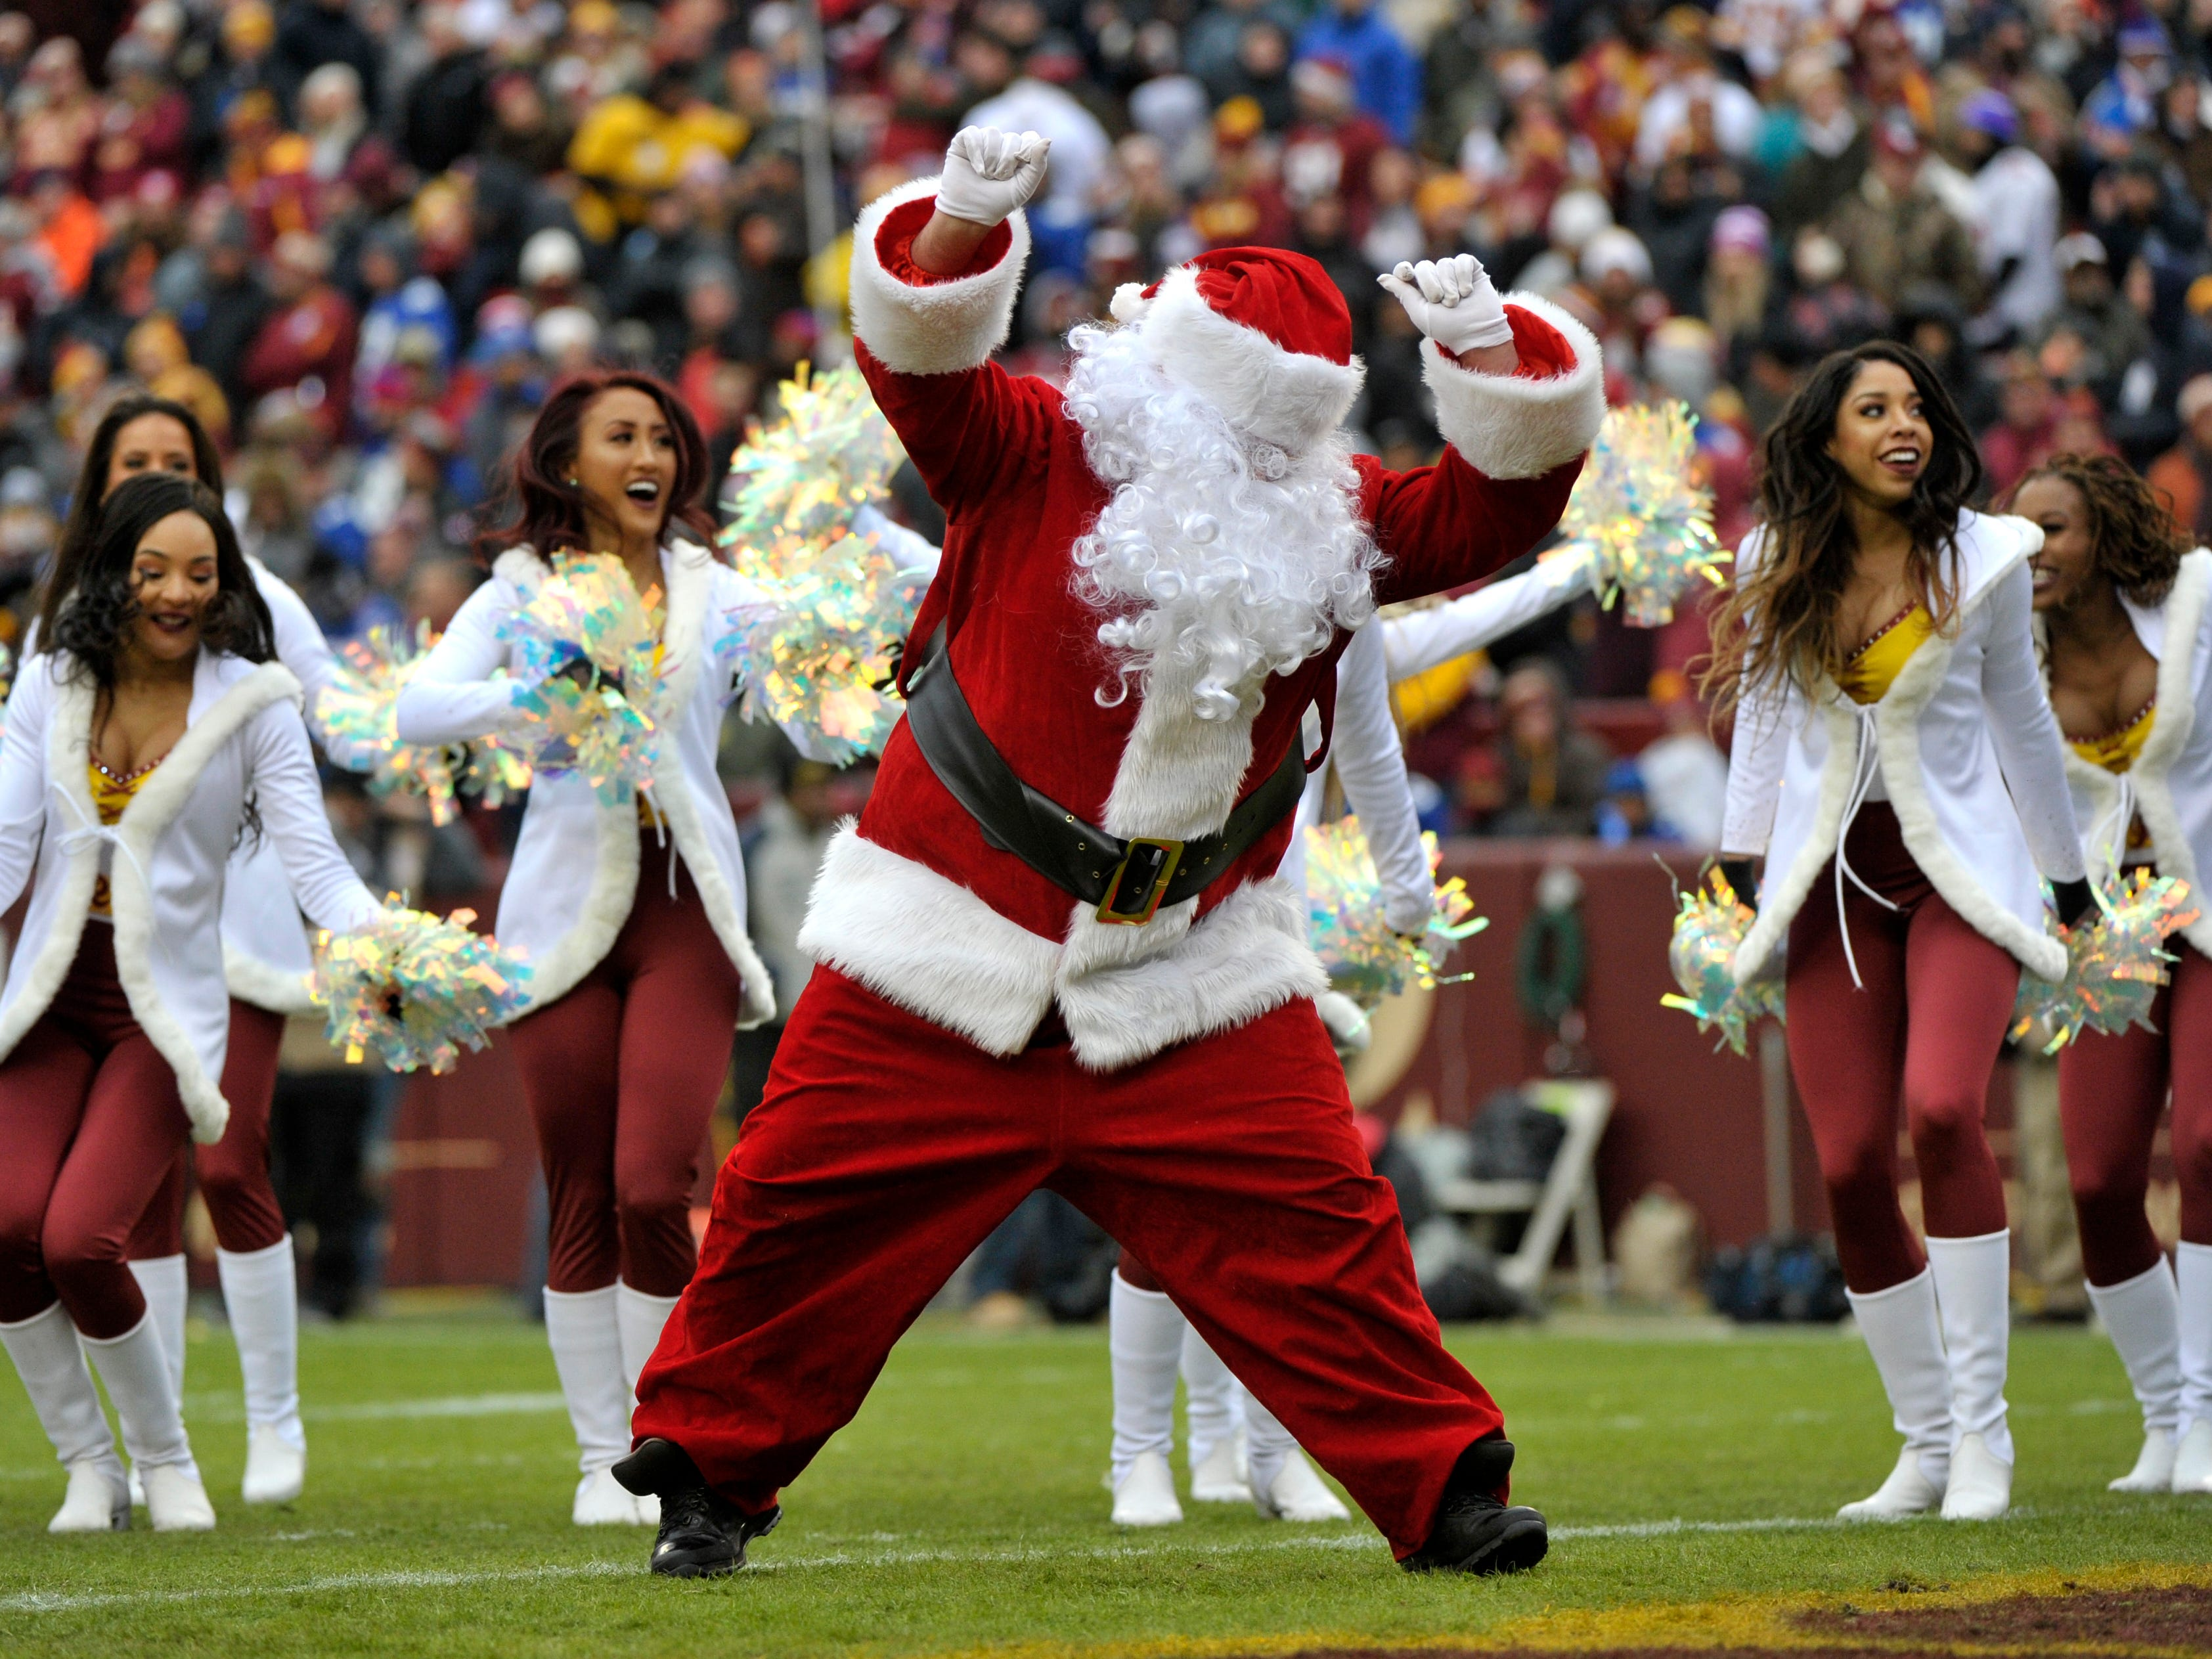 Washington Redskins cheerleaders perform with Santa Claus during an NFL football game between the New York Giants and Washington Redskins,  Dec. 9, 2018, in Landover, Md. T: OTK146